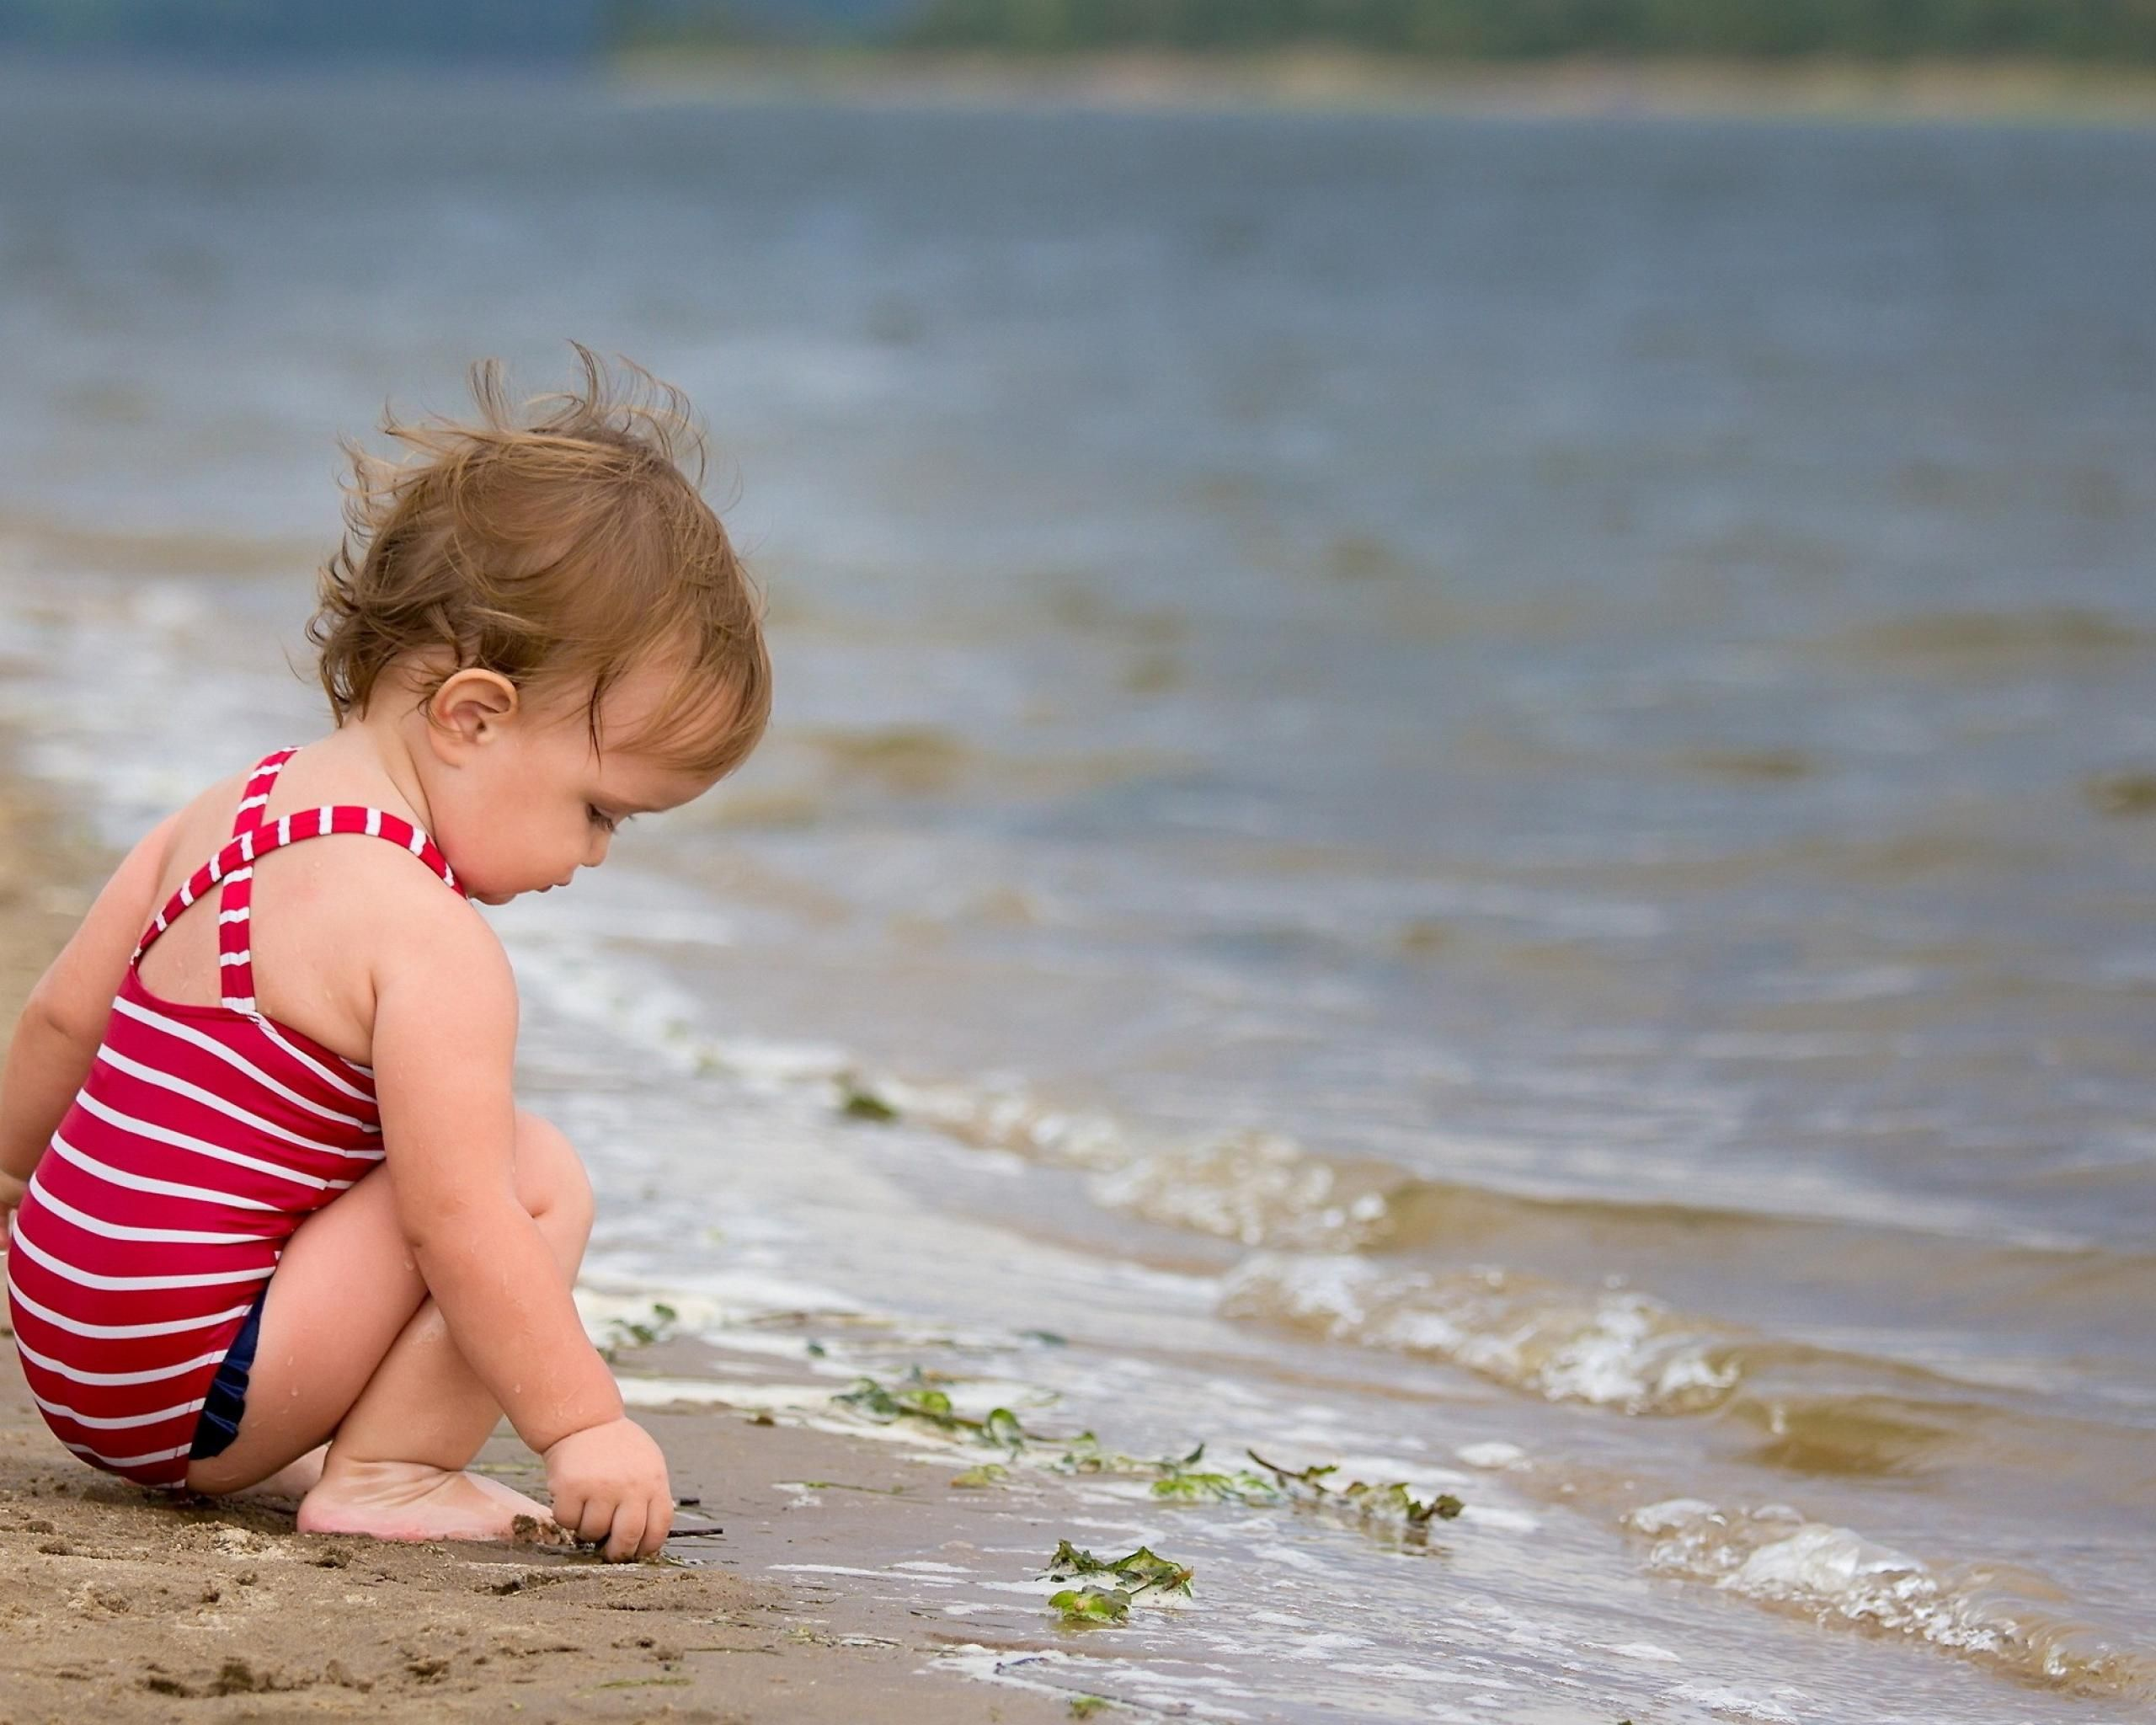 kids beach sea photography children free hd wallpapers resolution filesize kb added on october tagged kids - Kids Images Free Download